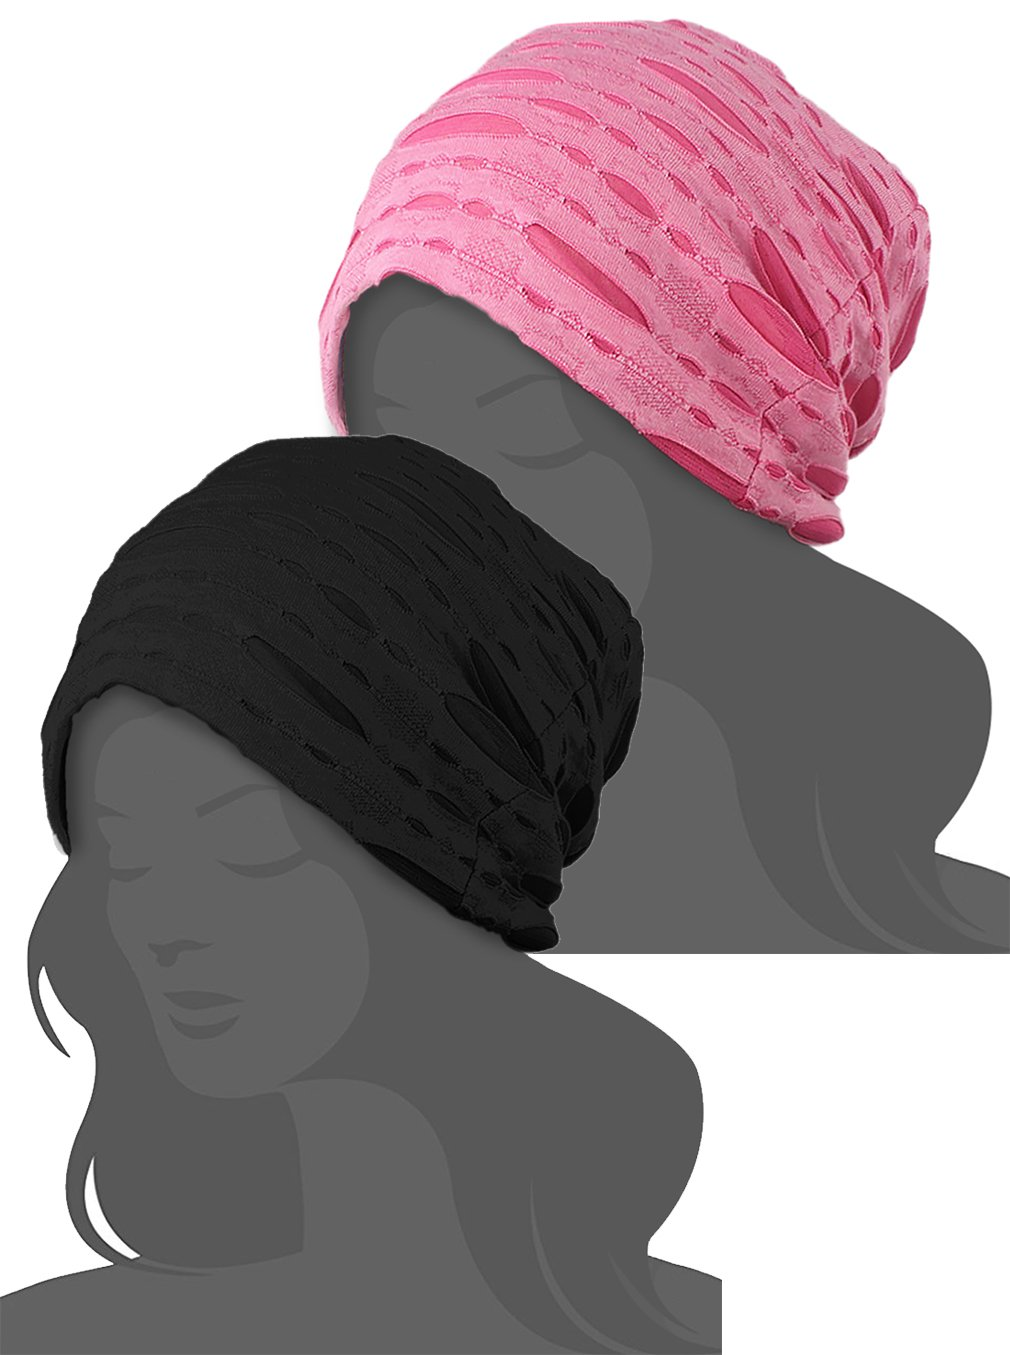 2 Pack Stylish Wrinkled Beanie Cap Slouchy Skull Hat Pink Blue 2 Pack